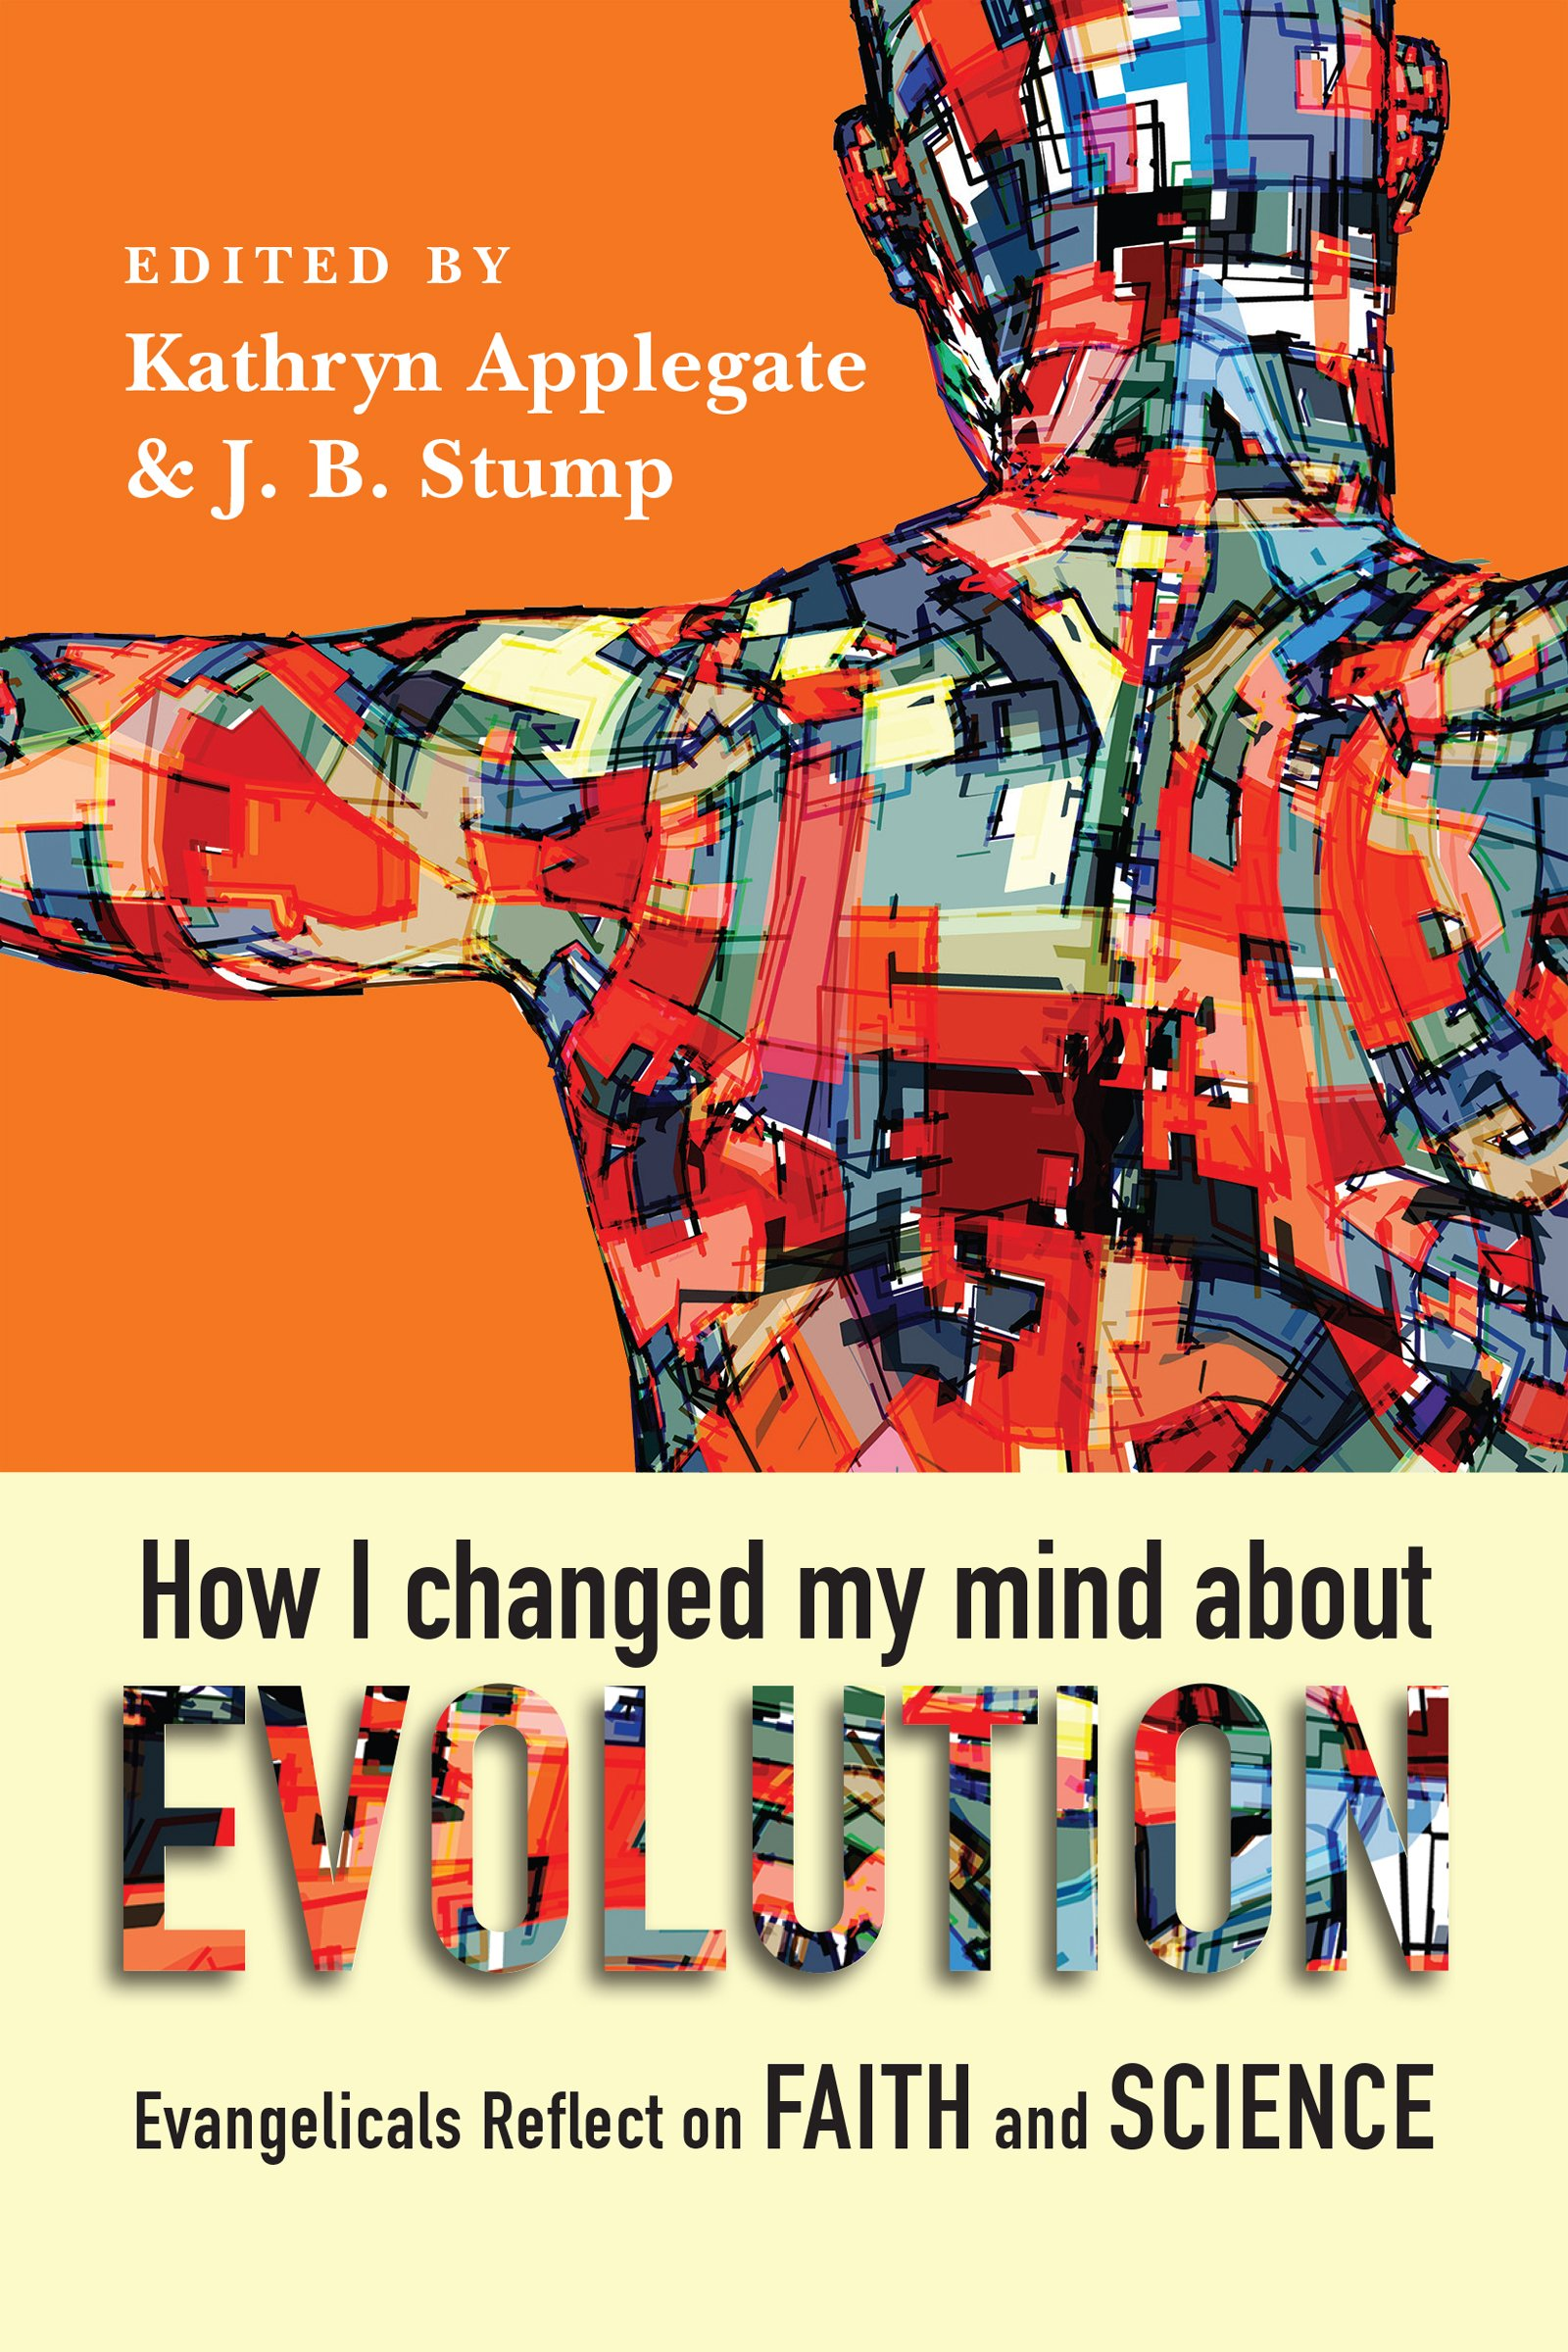 How I Changed My Mind About Evolution: Evangelicals Reflect on Faith and Science (BioLogos Books on Science and Christianity) by imusti